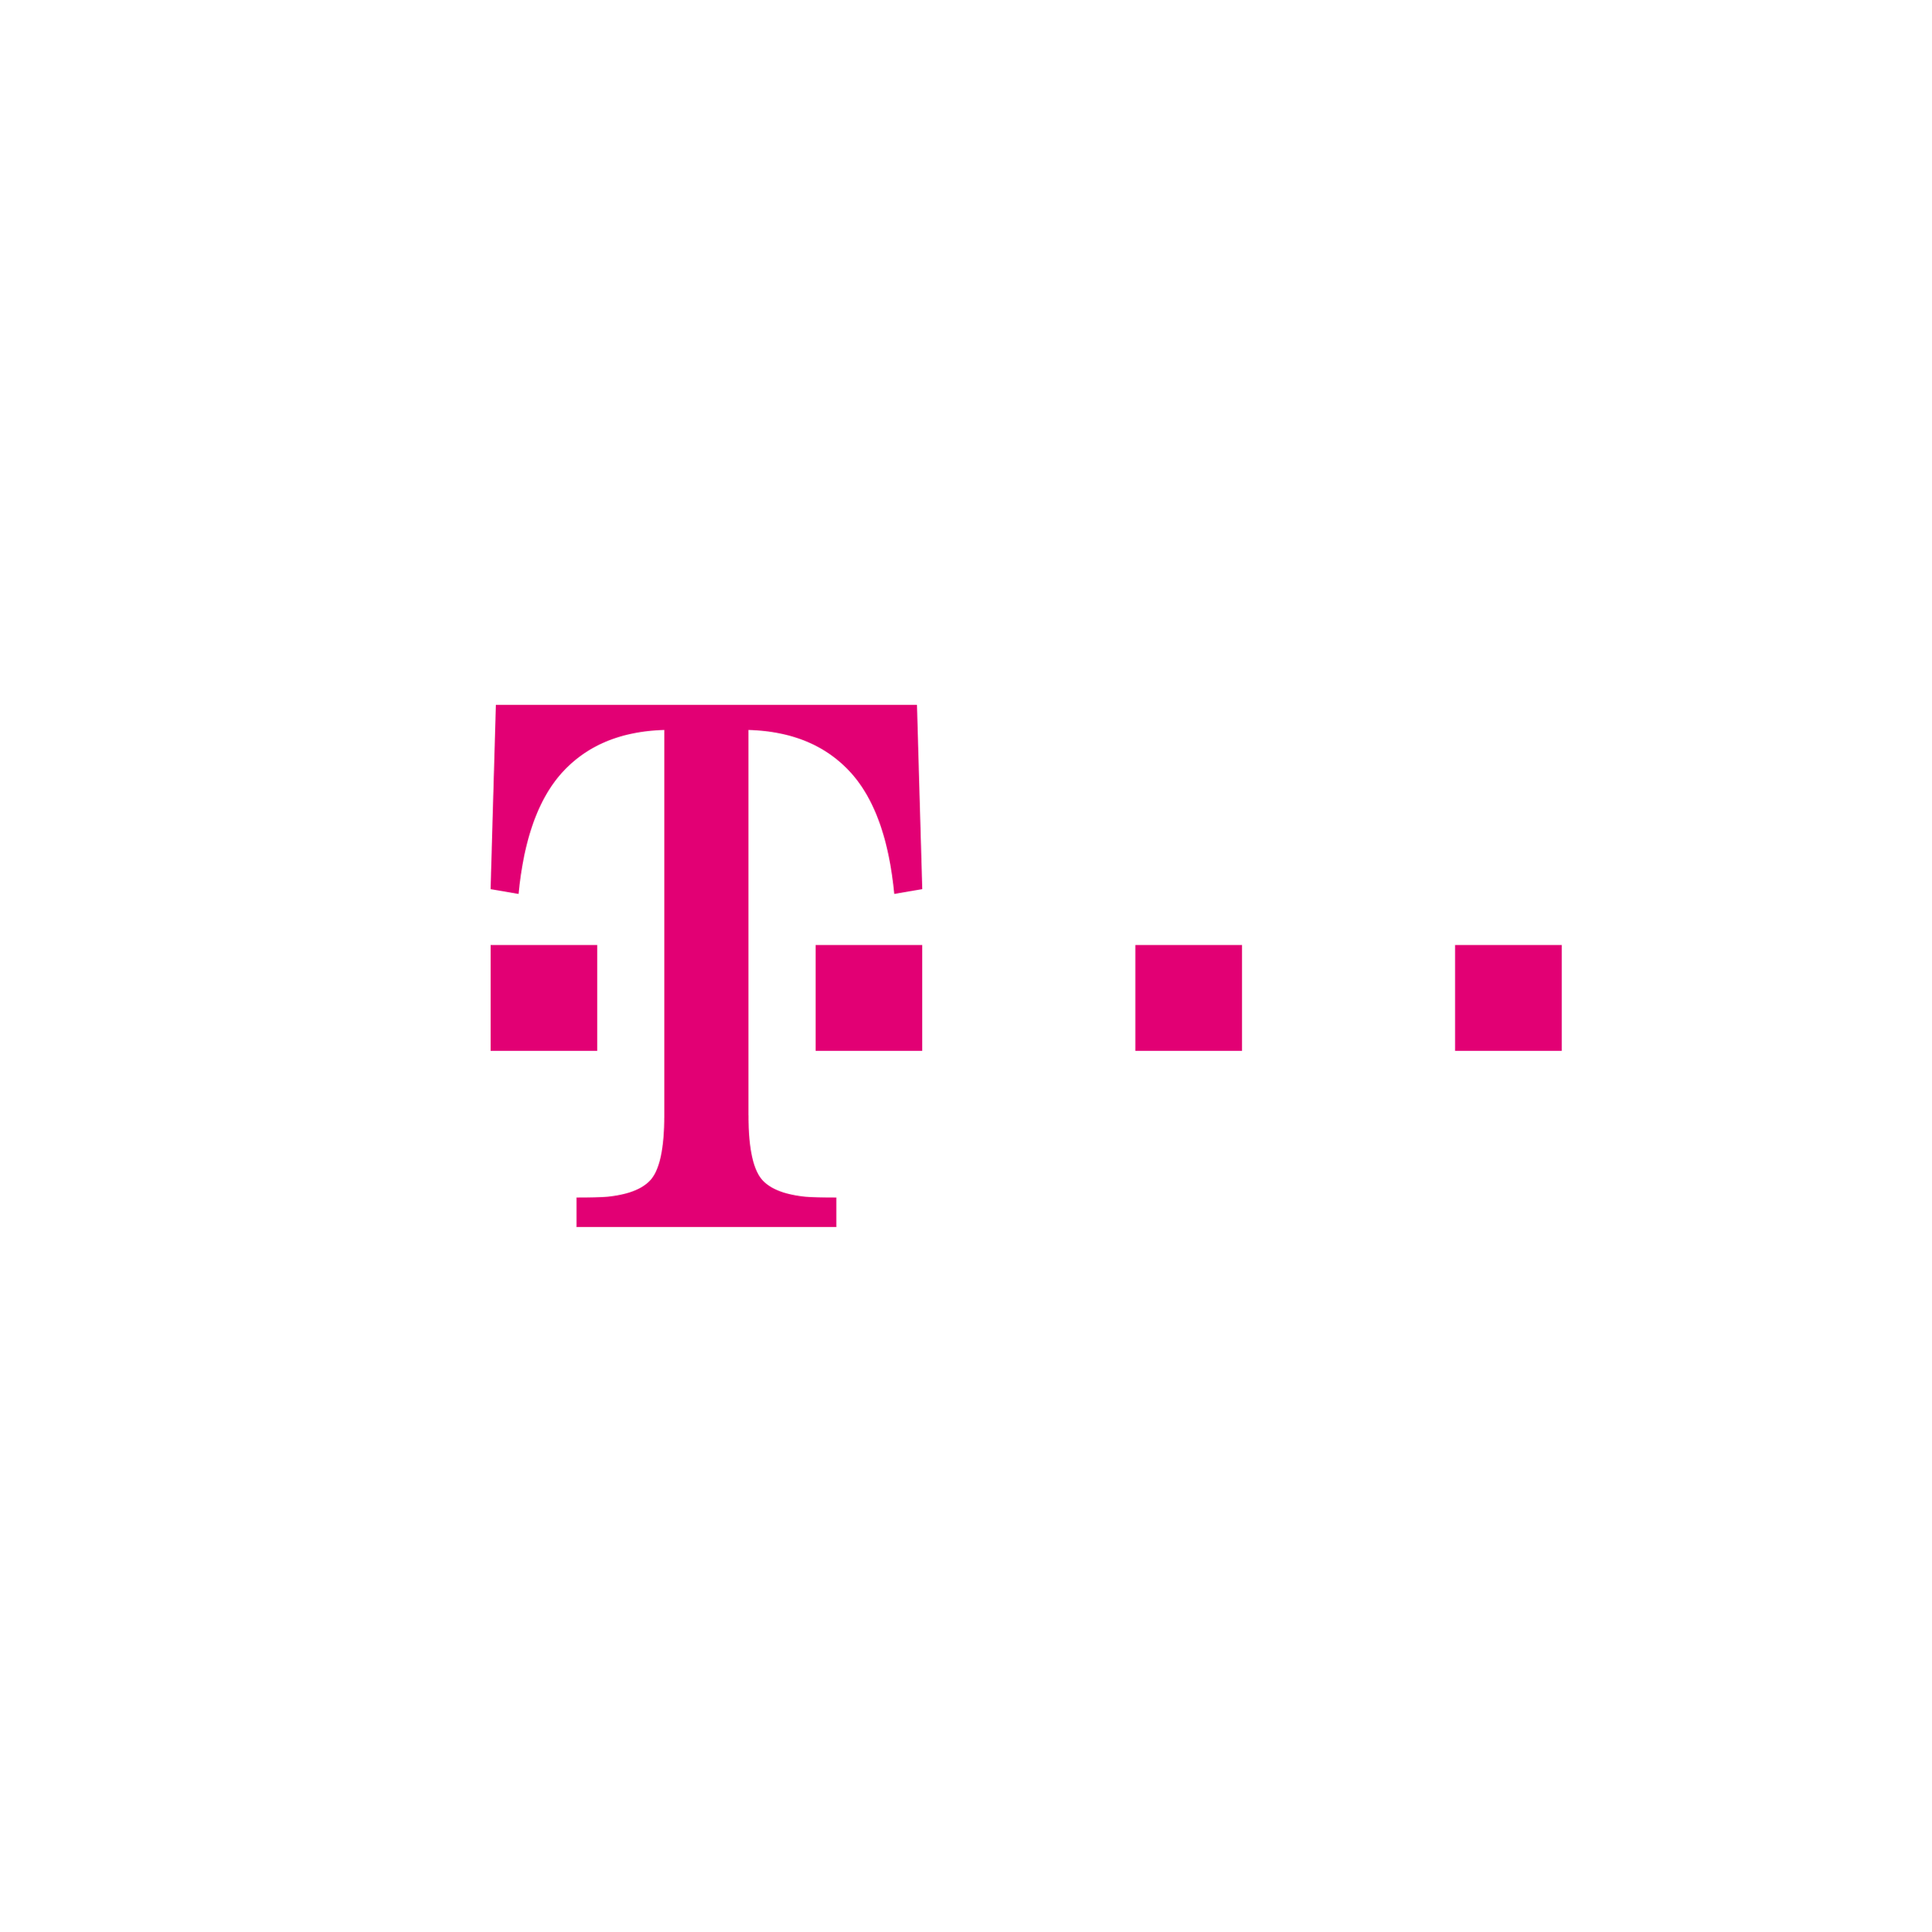 Deutsche Telekom Shareholders Meeting